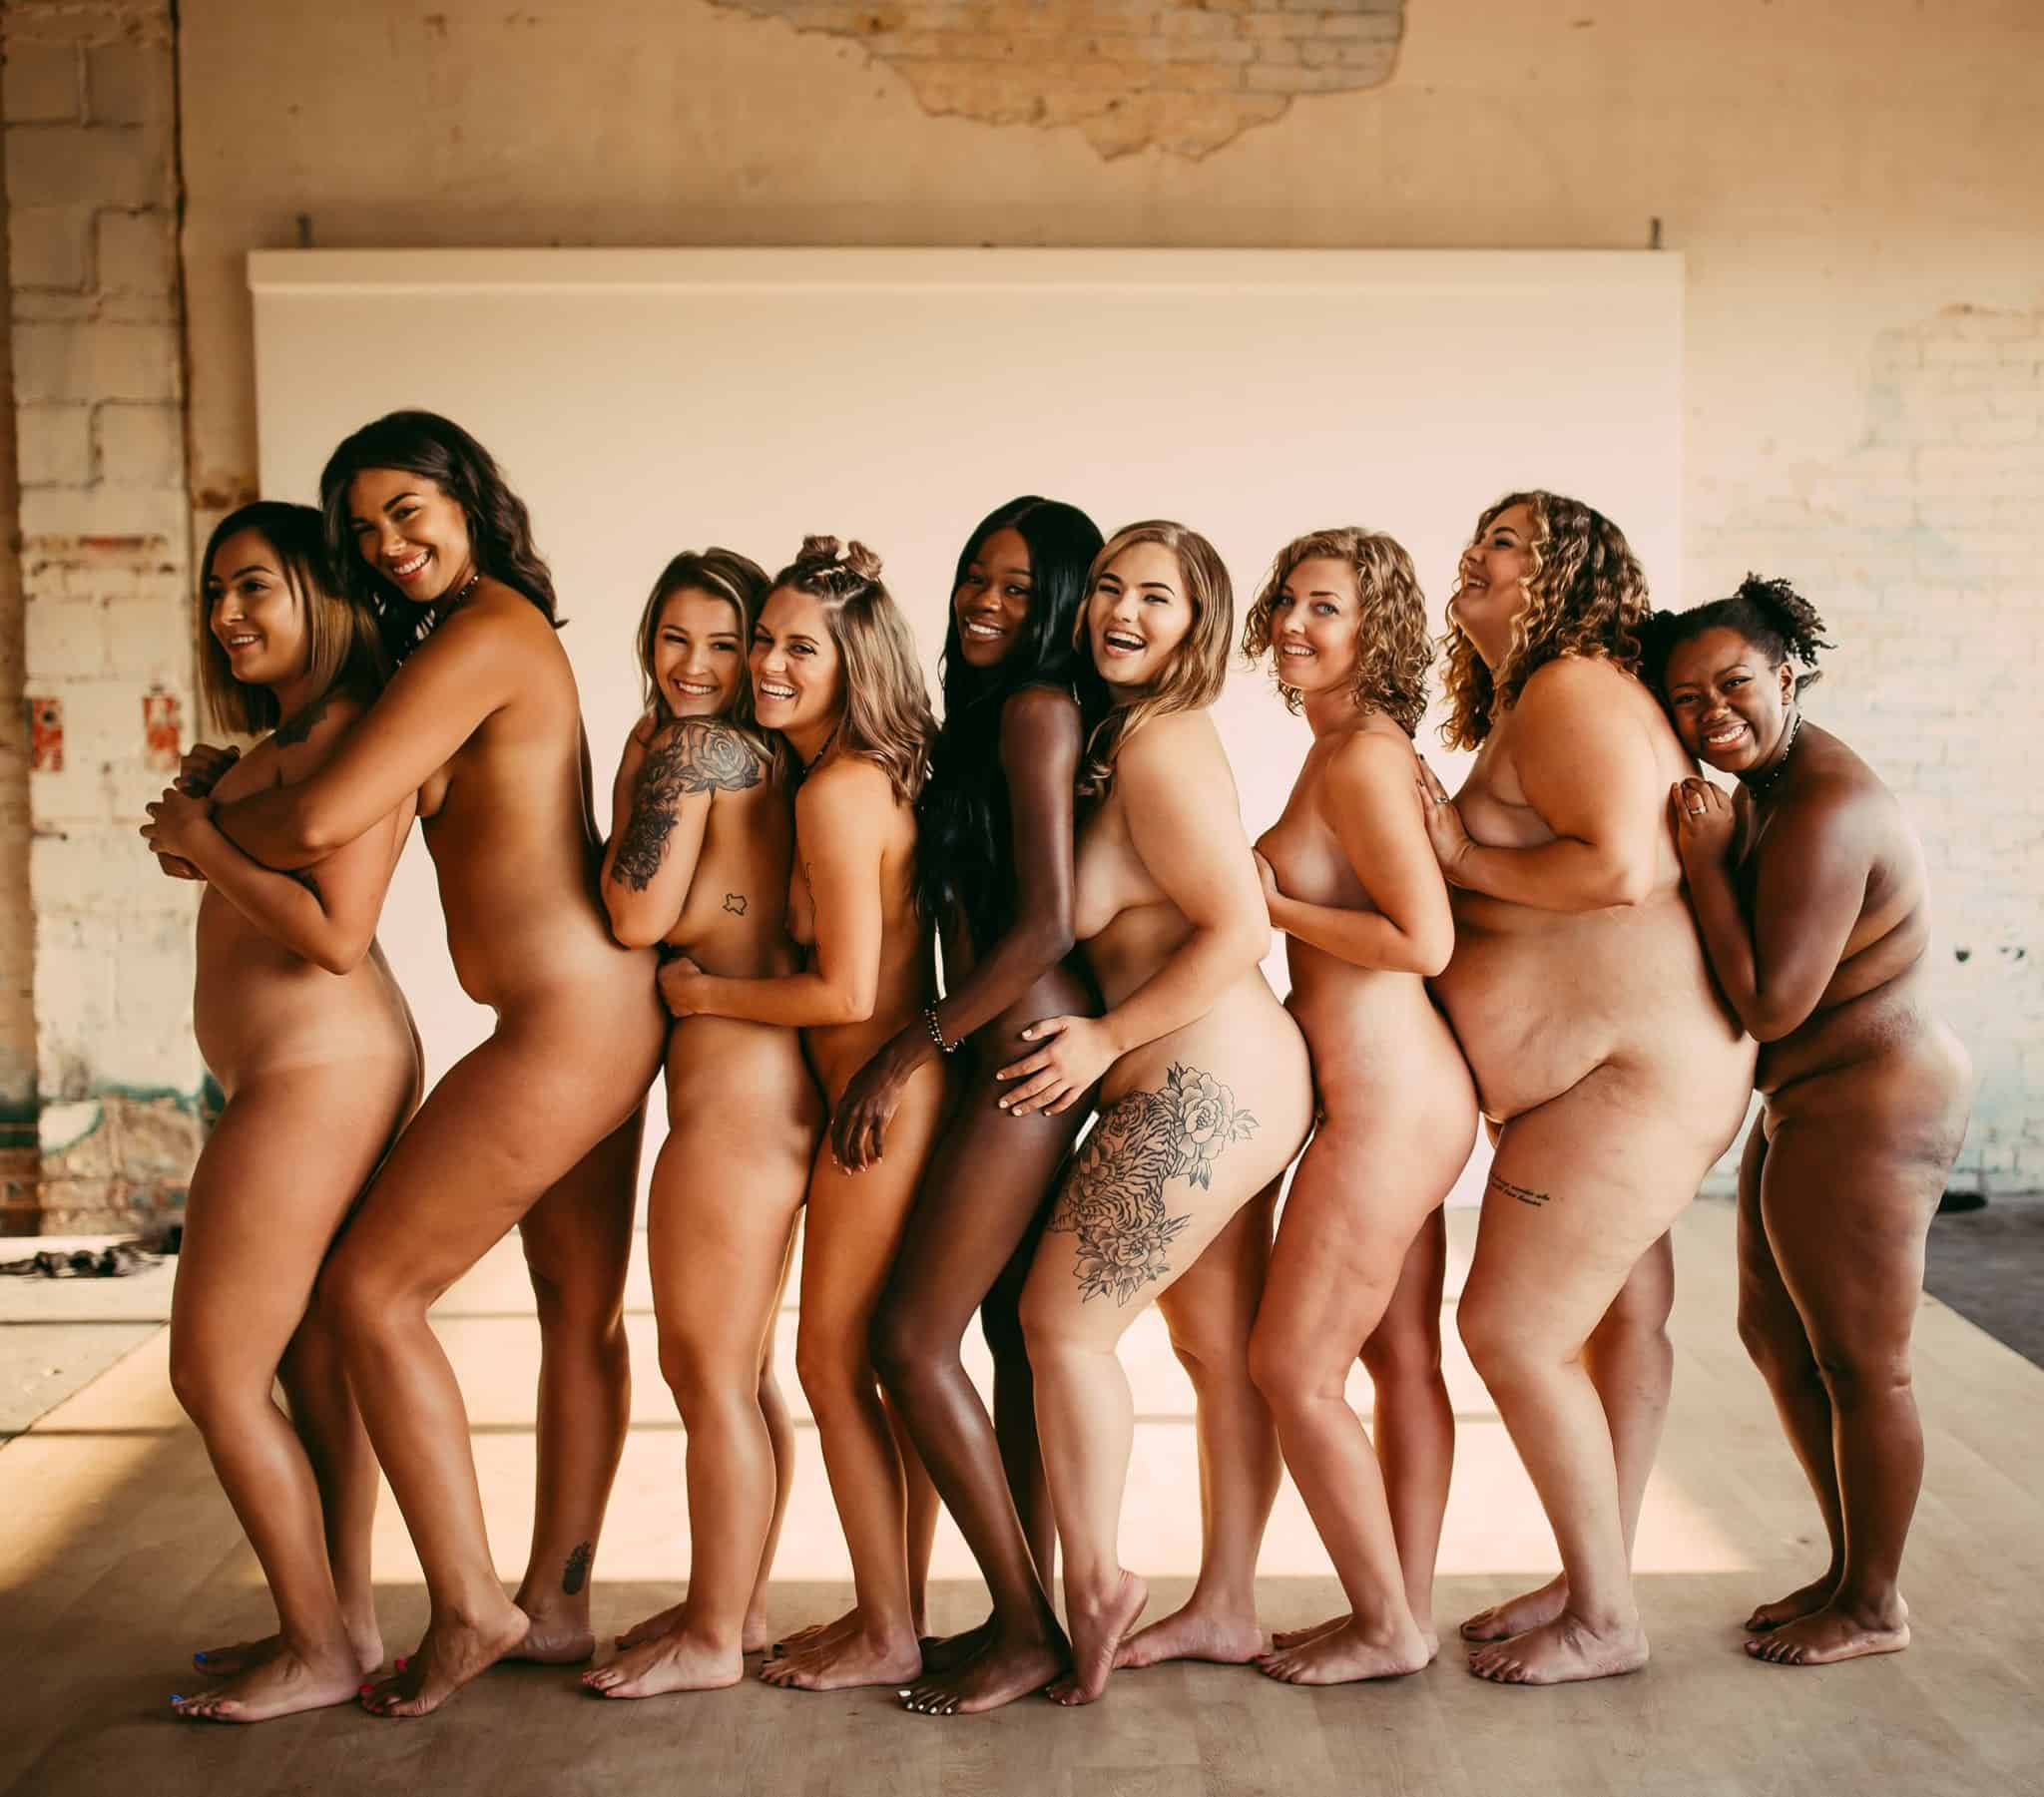 A group of naked women in all sizes and shapes